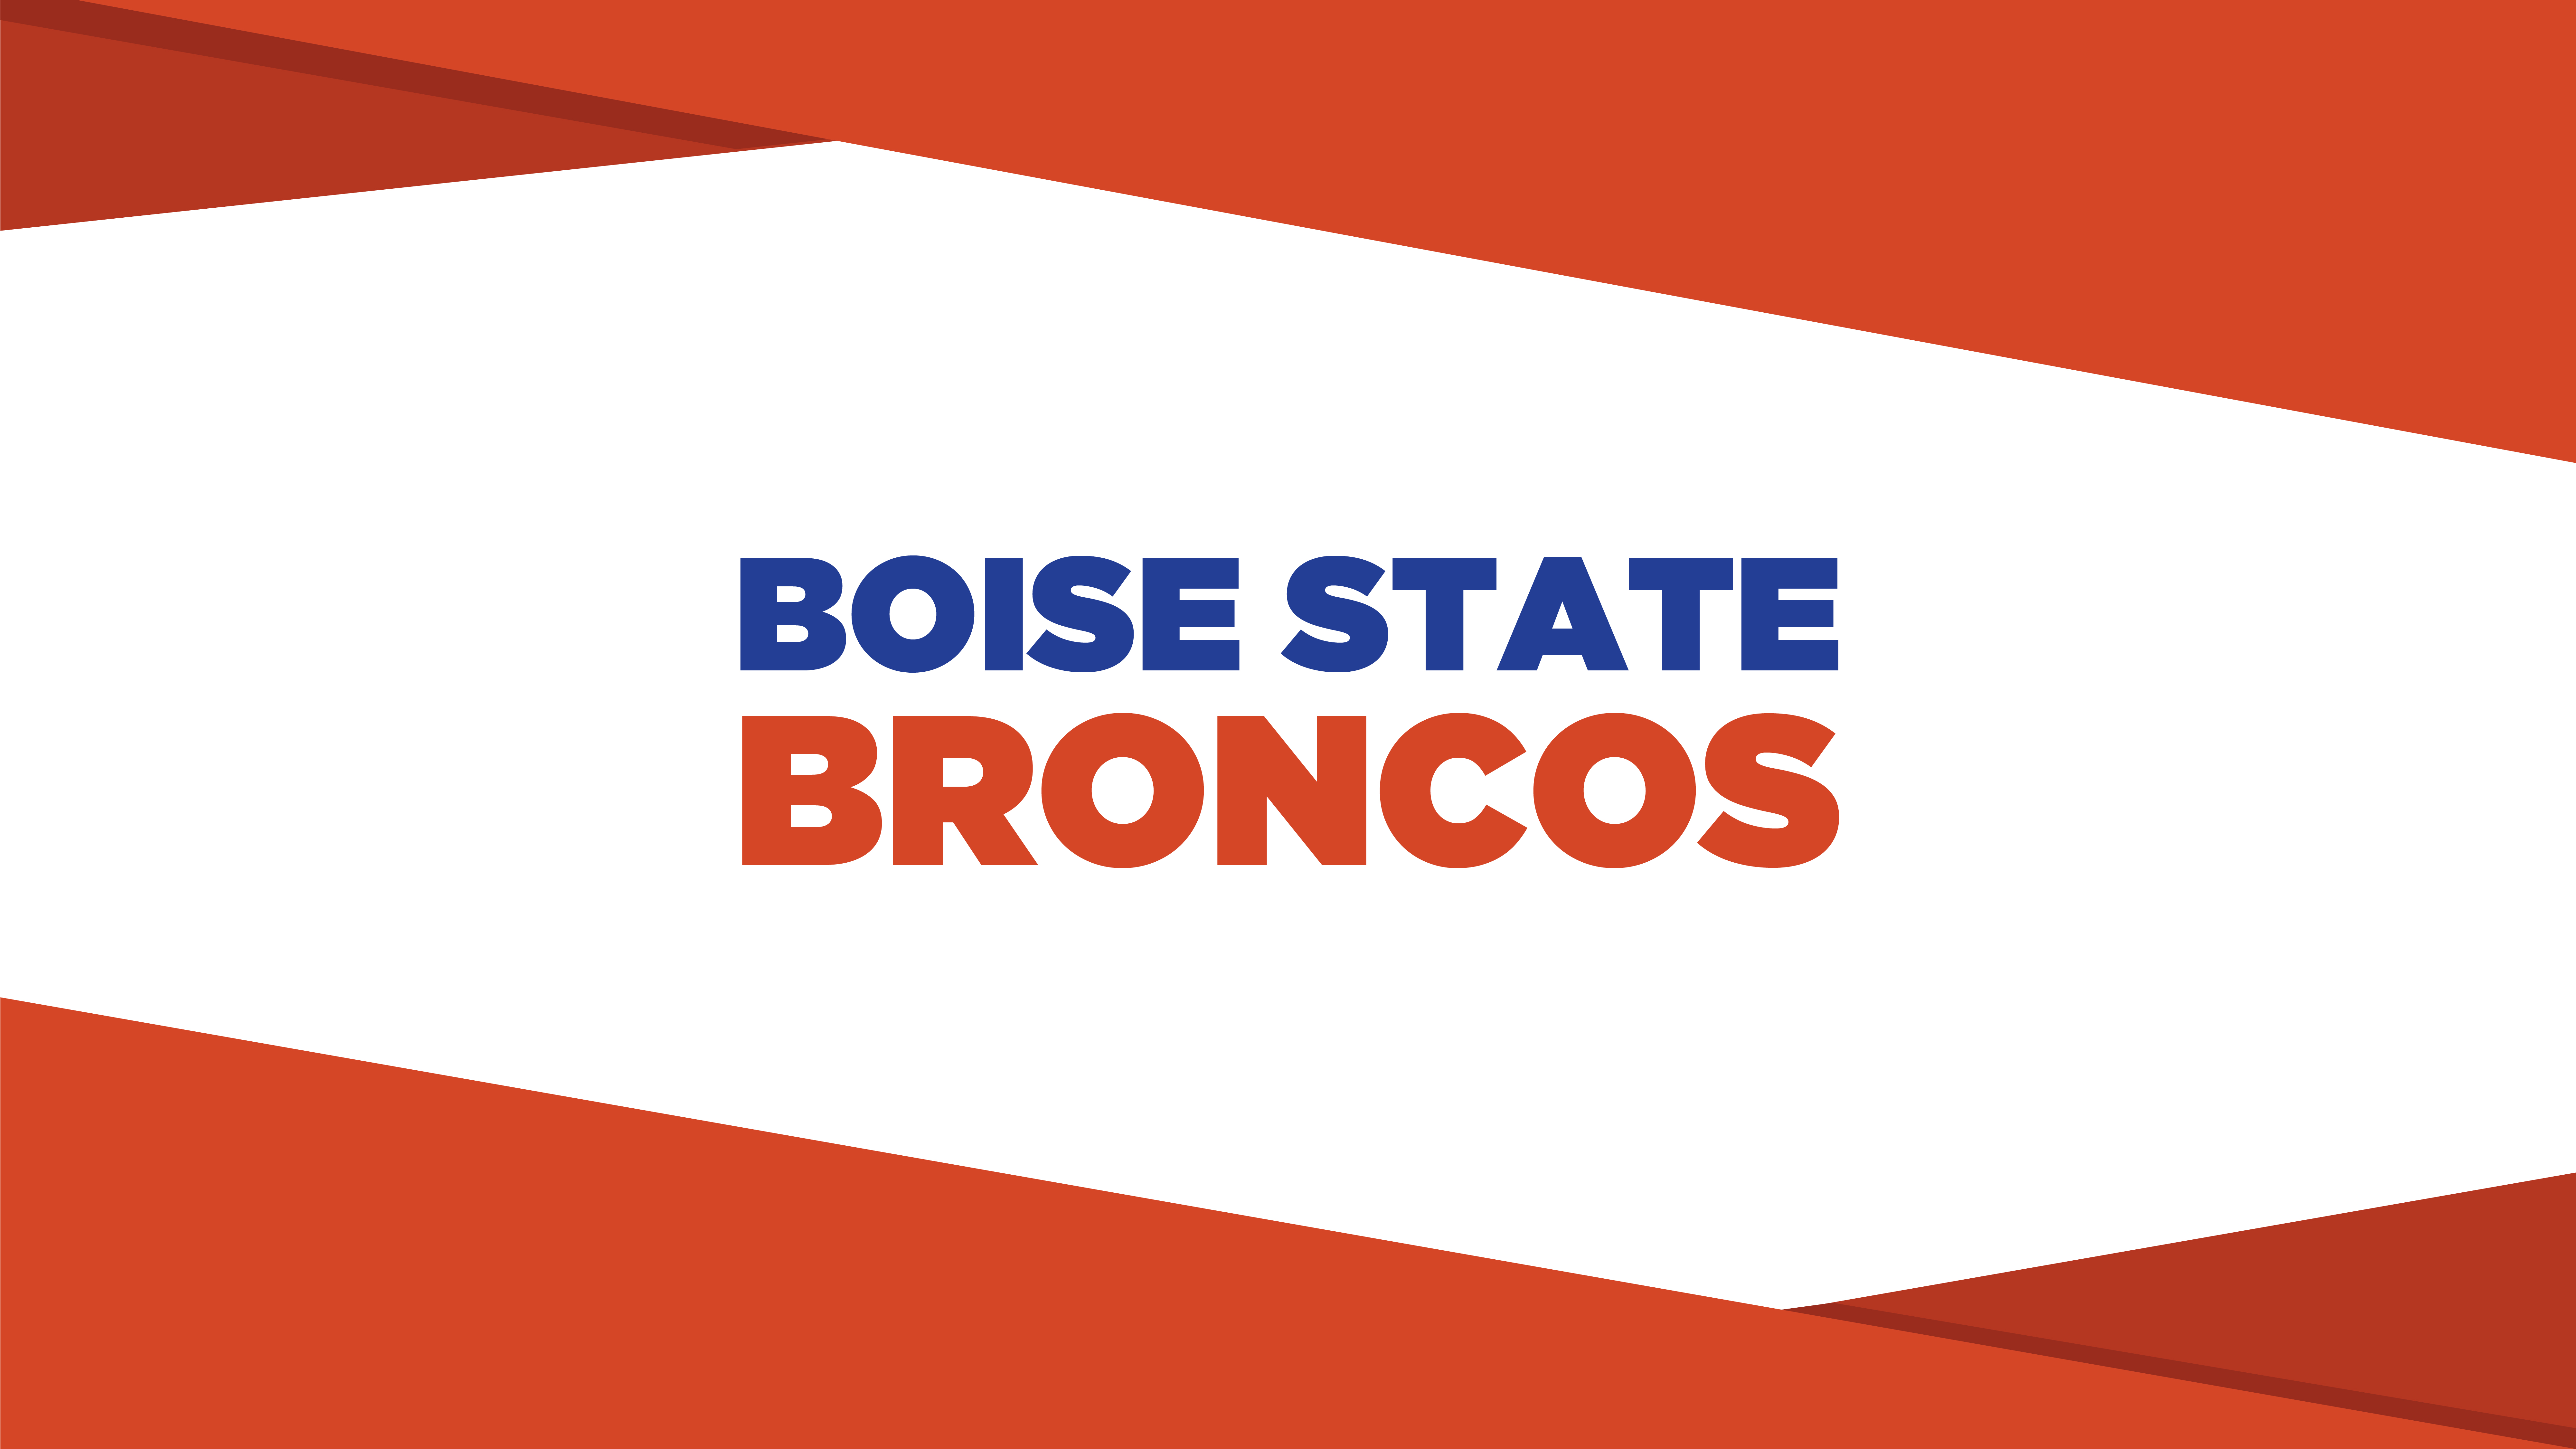 Boise State Broncos Orange and White Wallpaper